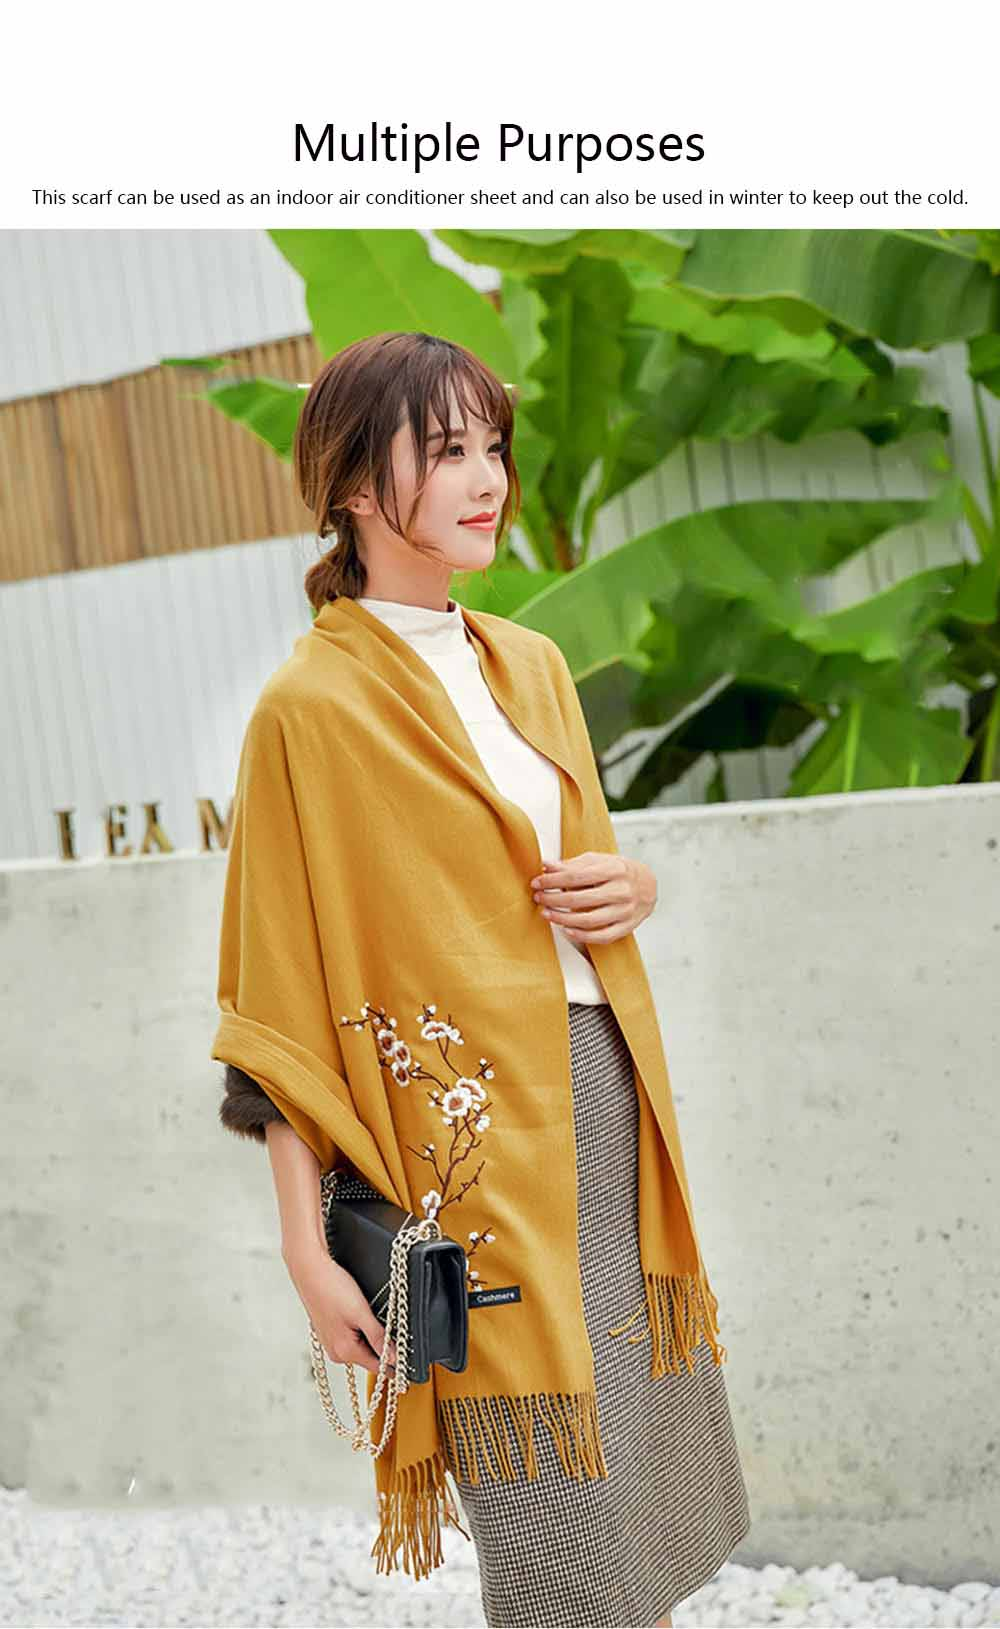 Lady's Embroidered Shawl Lady's Embroidered Cashmere Scarf for Sun & Cold Protection 4